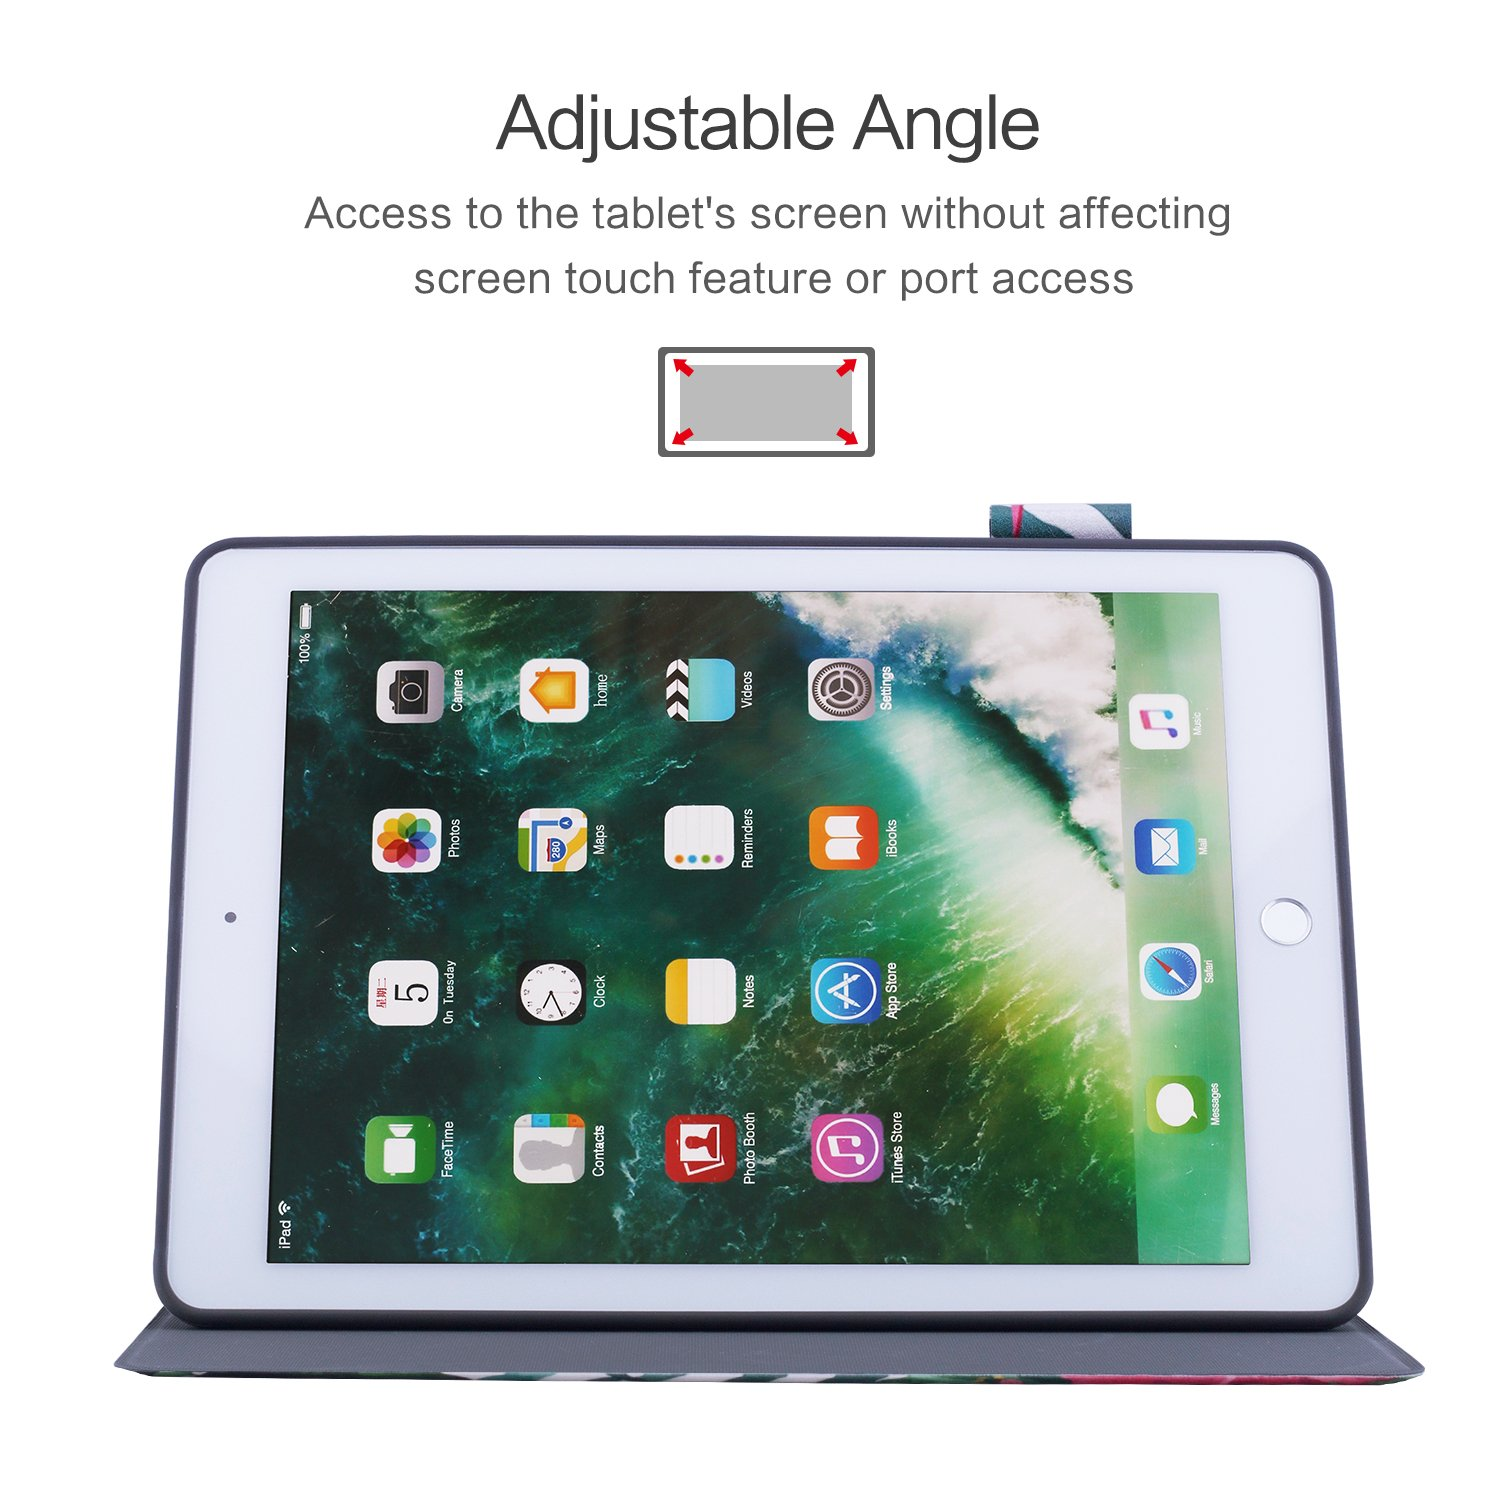 New iPad 9.7 inch 2018/2017 Case, Dopup Premium Leather Case, Multiple Viewing Angles Stand, Shock-Absortion Rubber Cover for Apple ipad 5th 6th Generation, Also Fits iPad Air 2/ iPad Air (Flower)